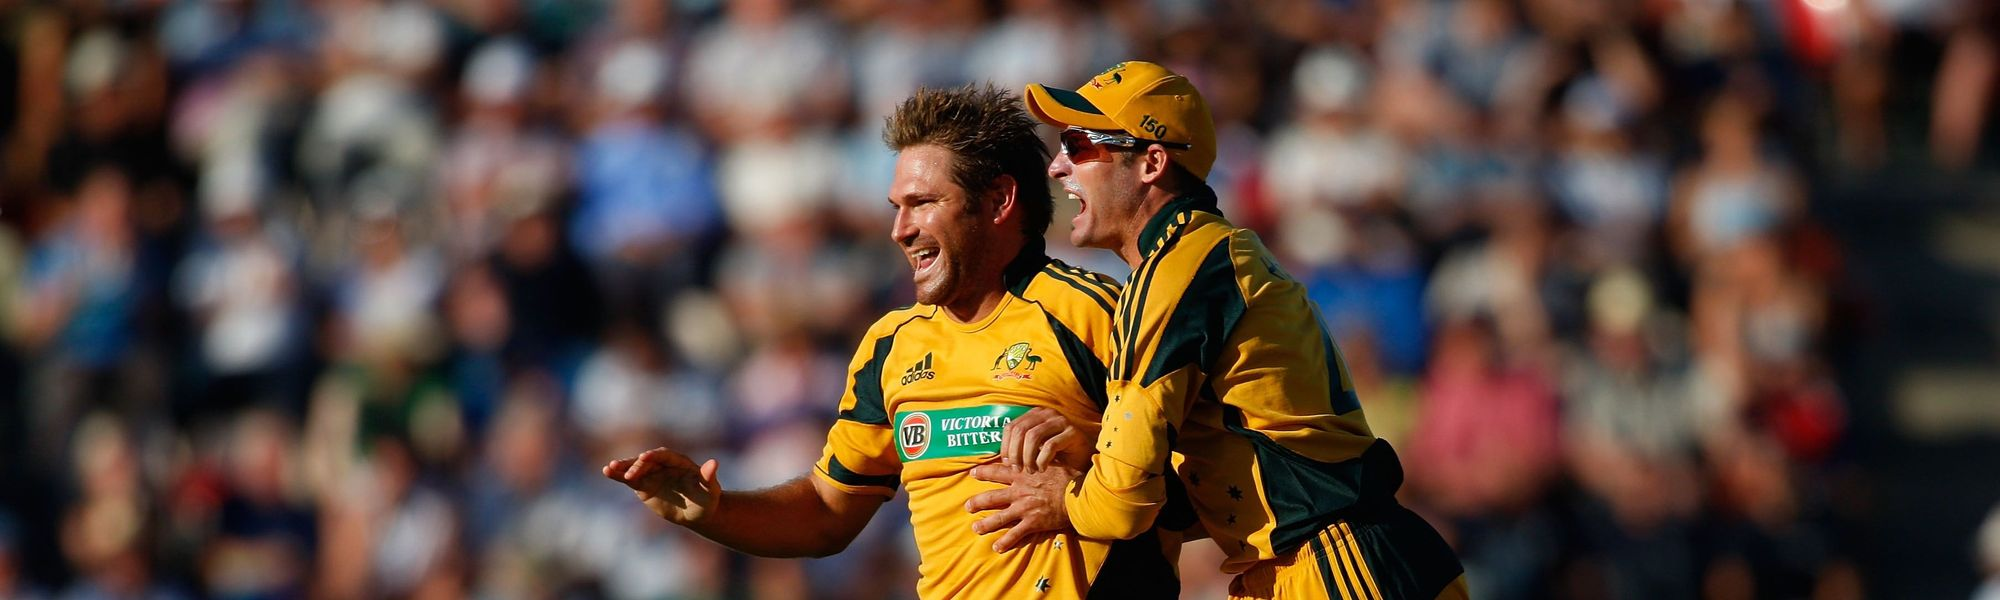 Ryan Harris and Mike Hussey